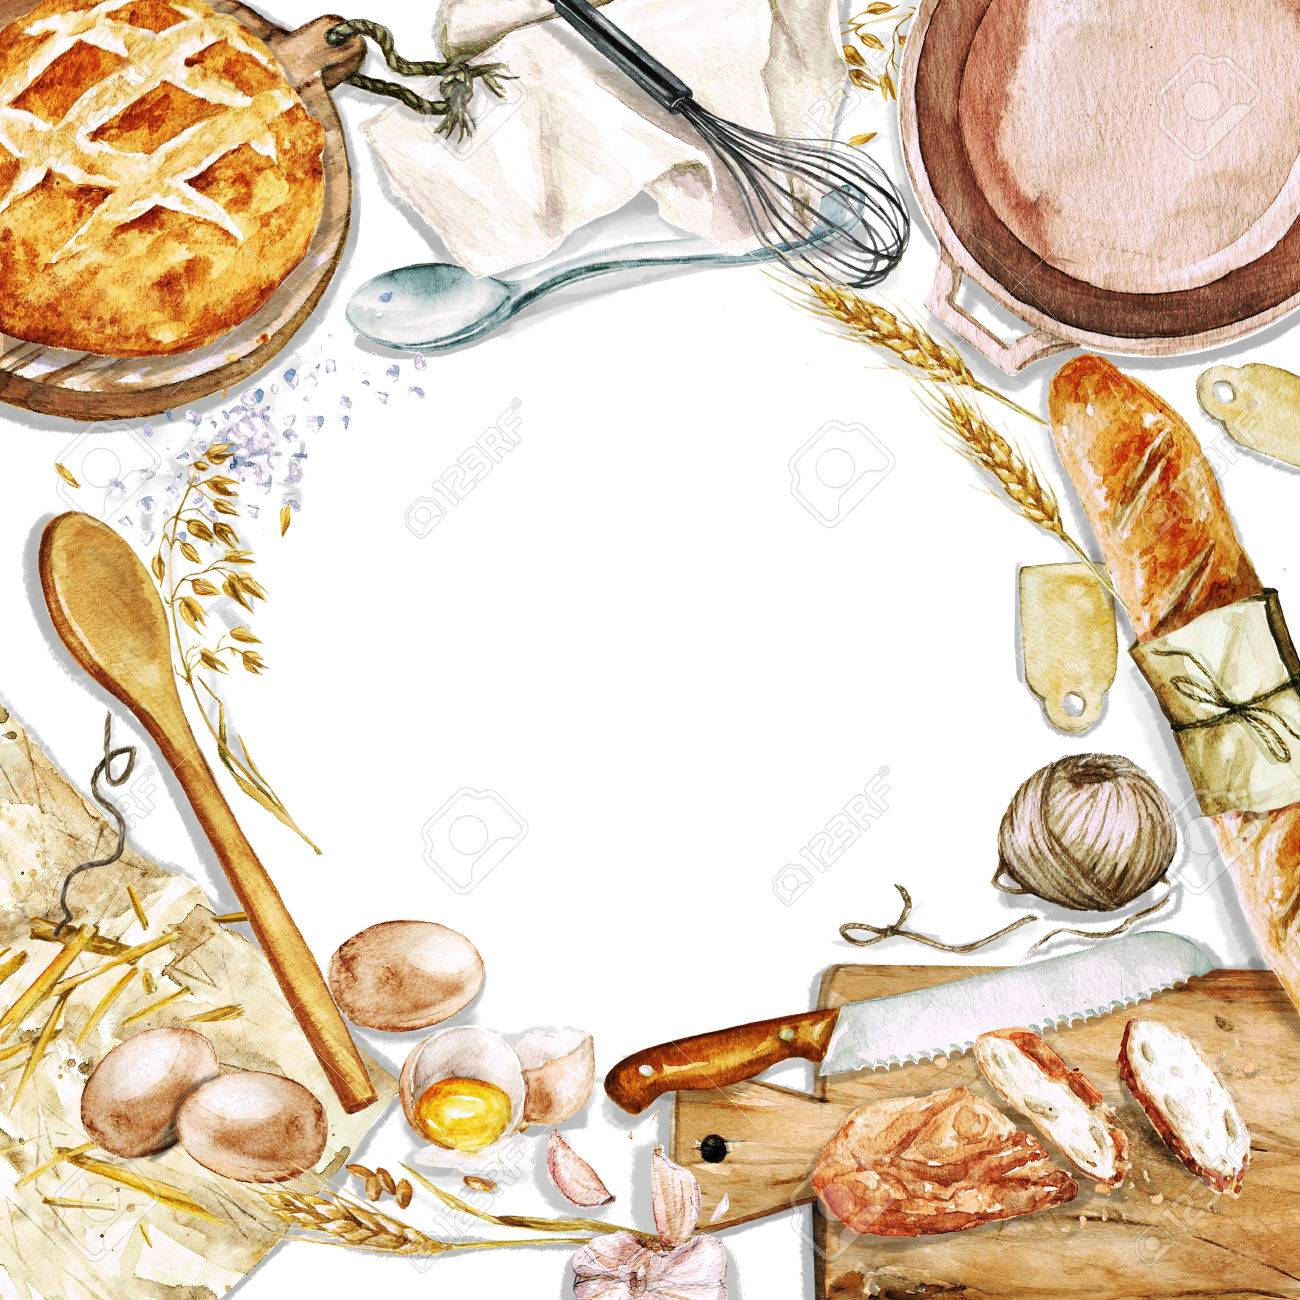 Watercolor background with space for text - Cooking Bread - 53240460